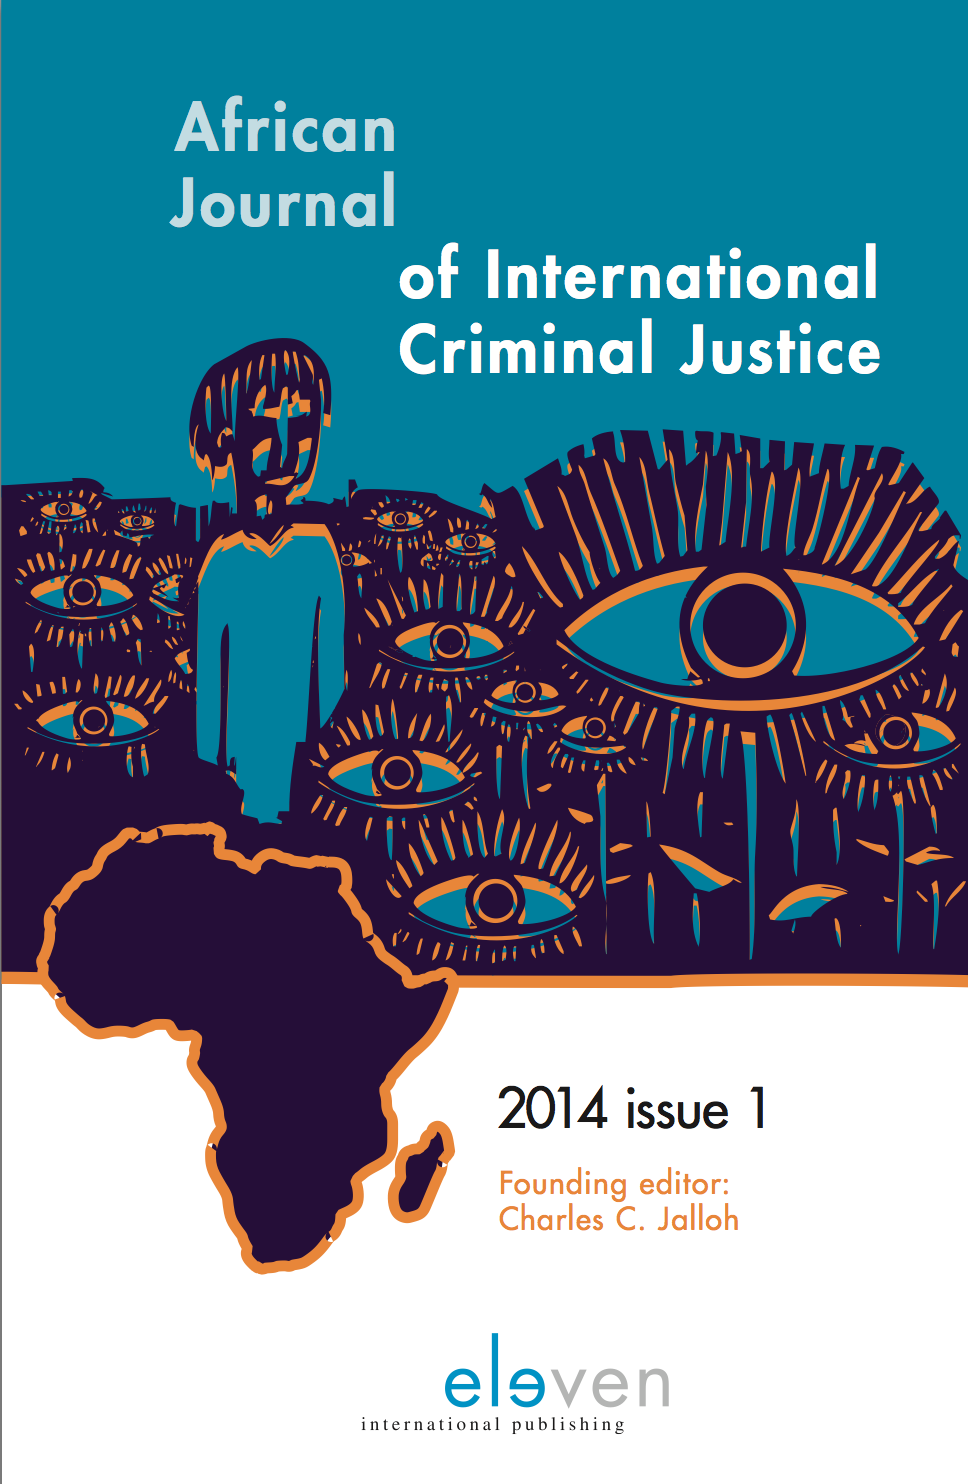 African Journal of International Criminal Justice